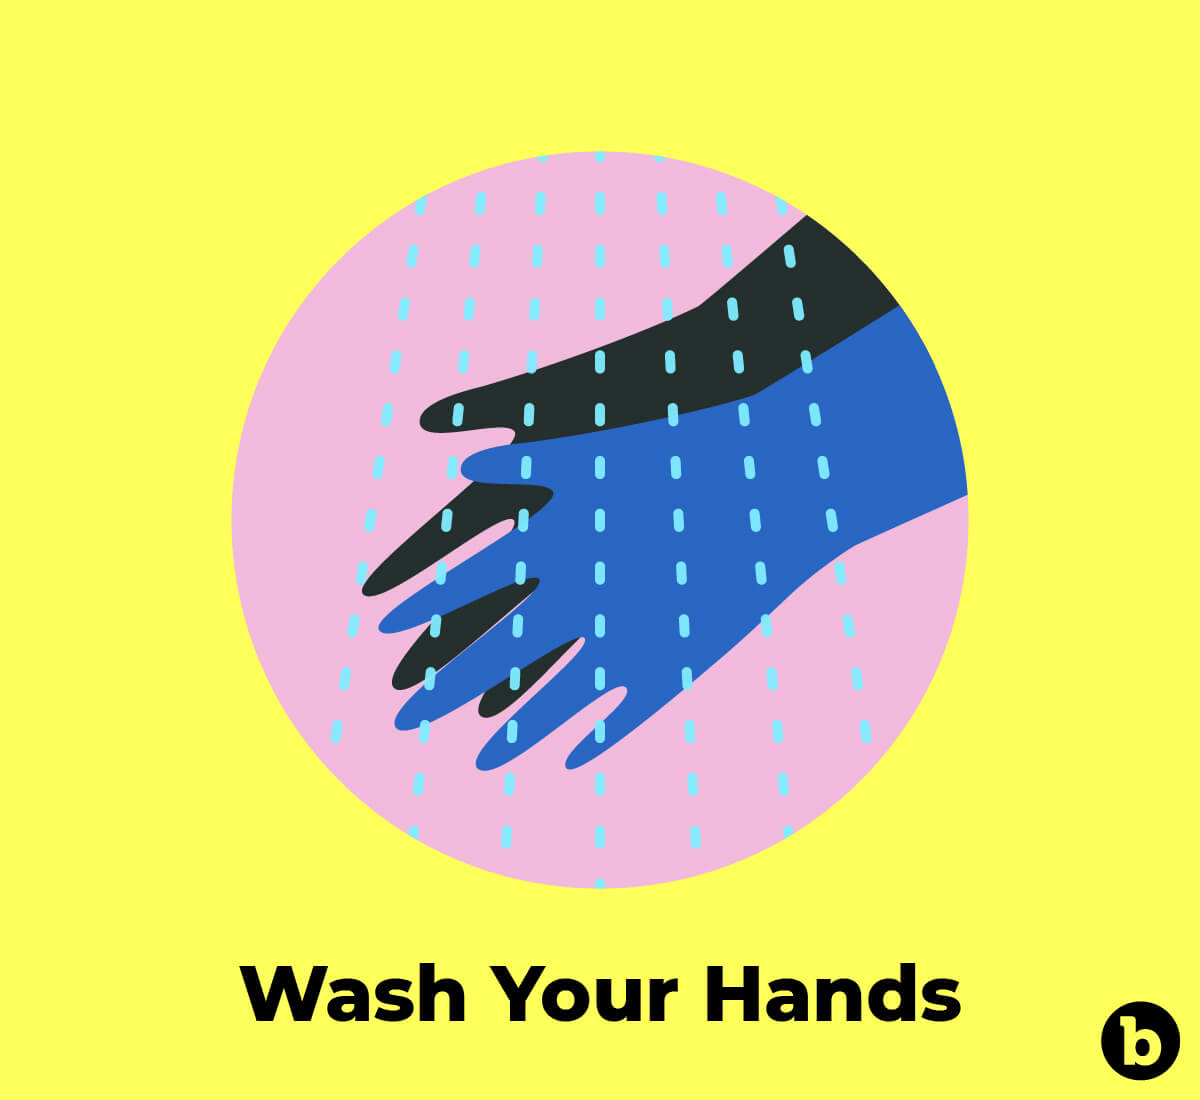 Always wash your hands before and after sexual activities